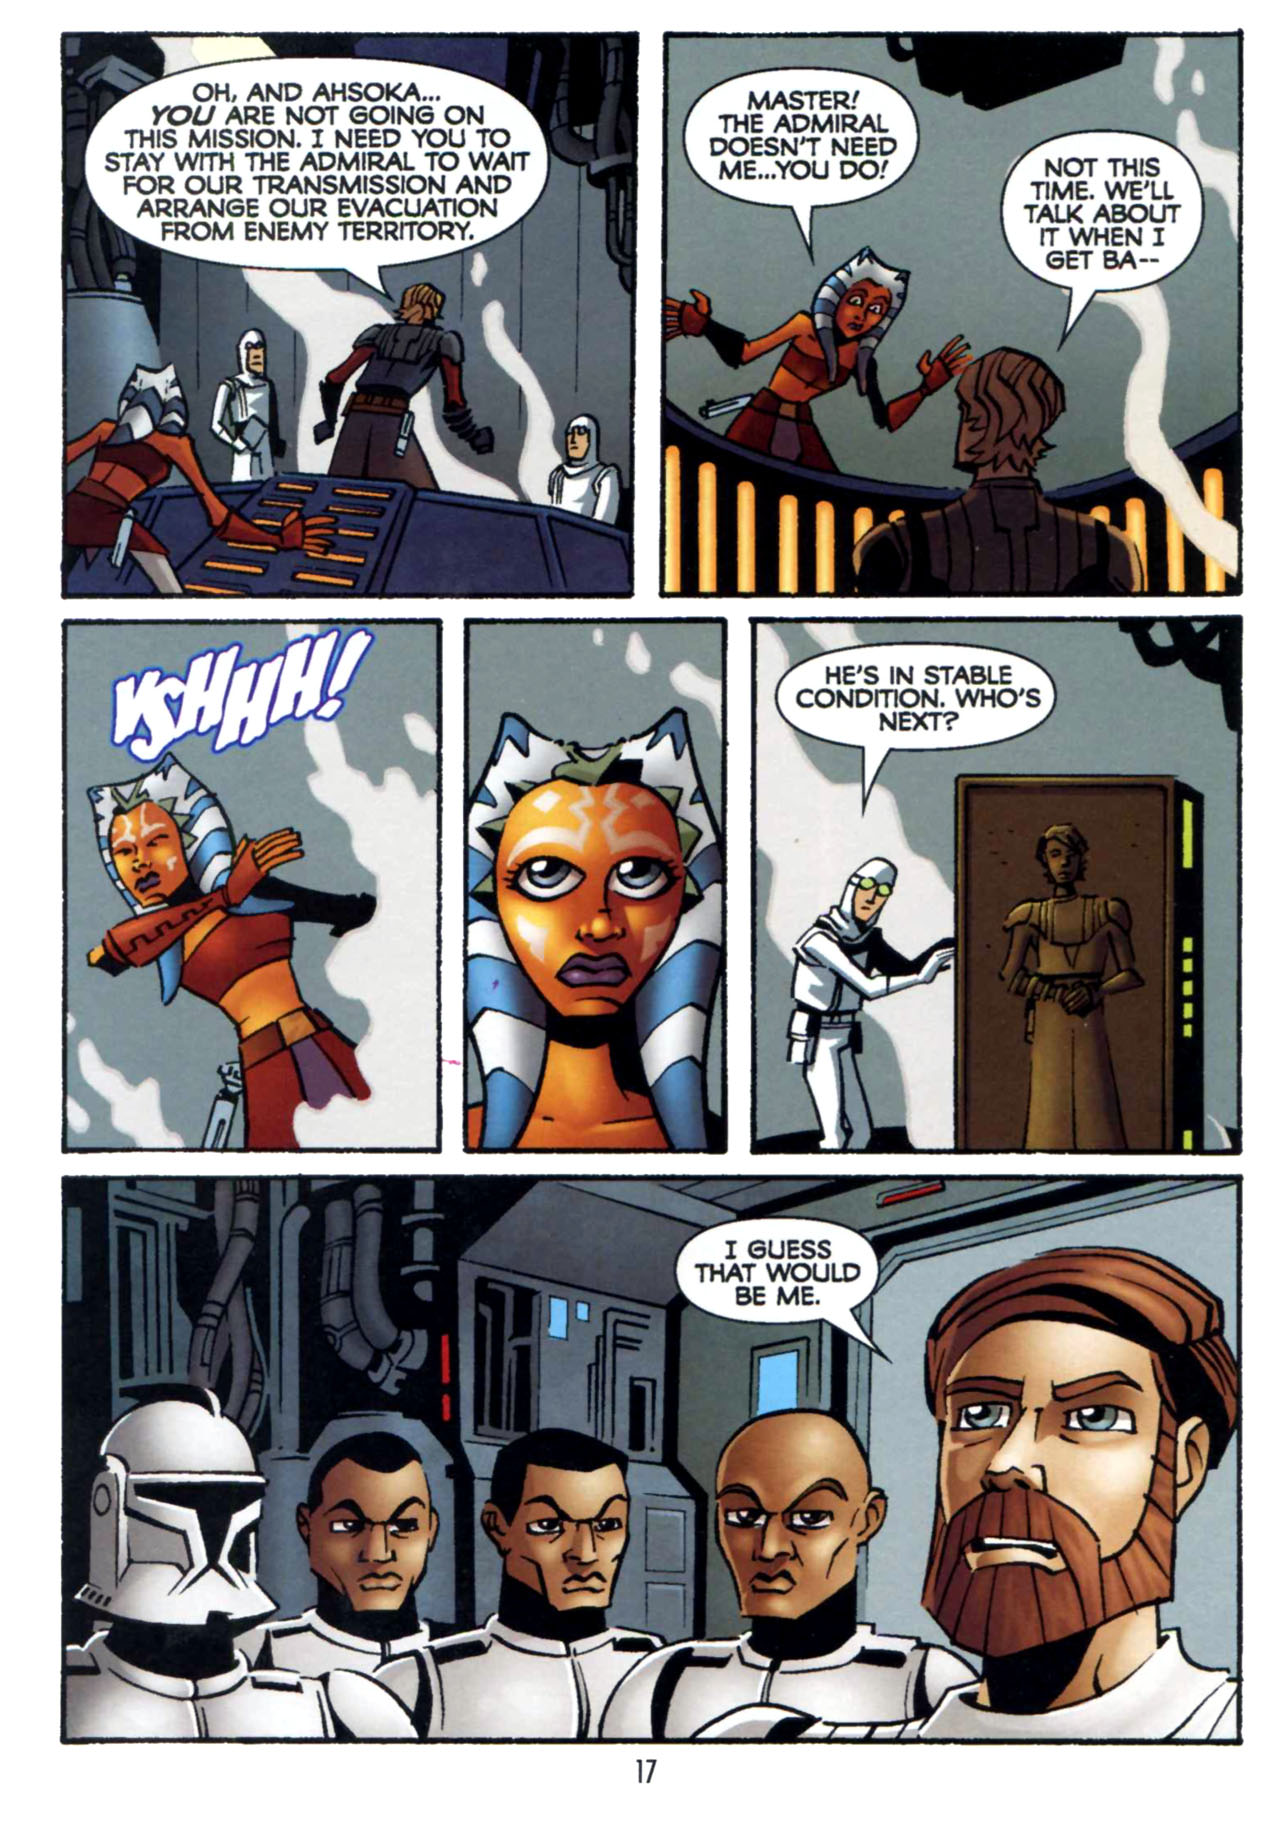 Read online Star Wars: The Clone Wars - Shipyards of Doom comic -  Issue # Full - 16